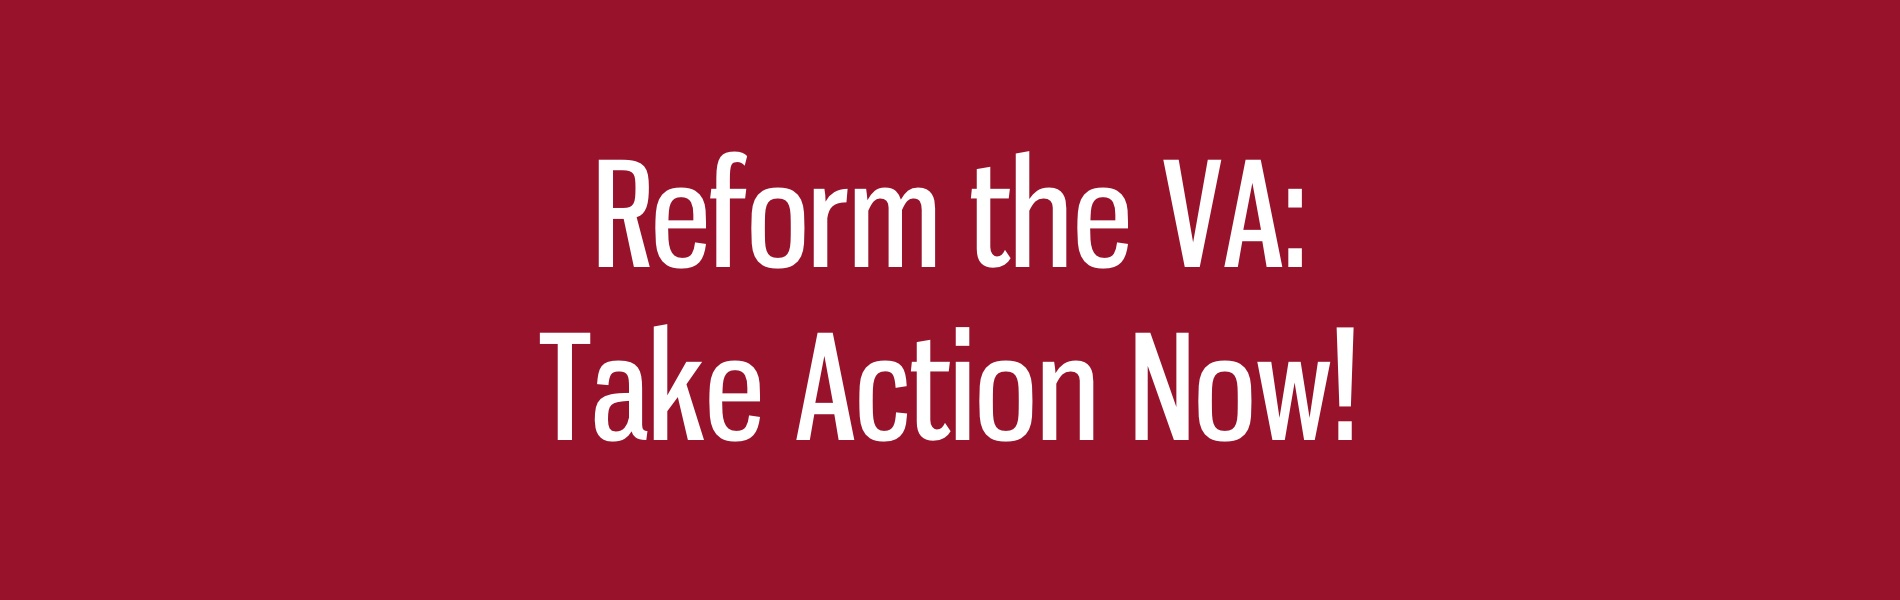 Support Our Veterans: Reform The VA